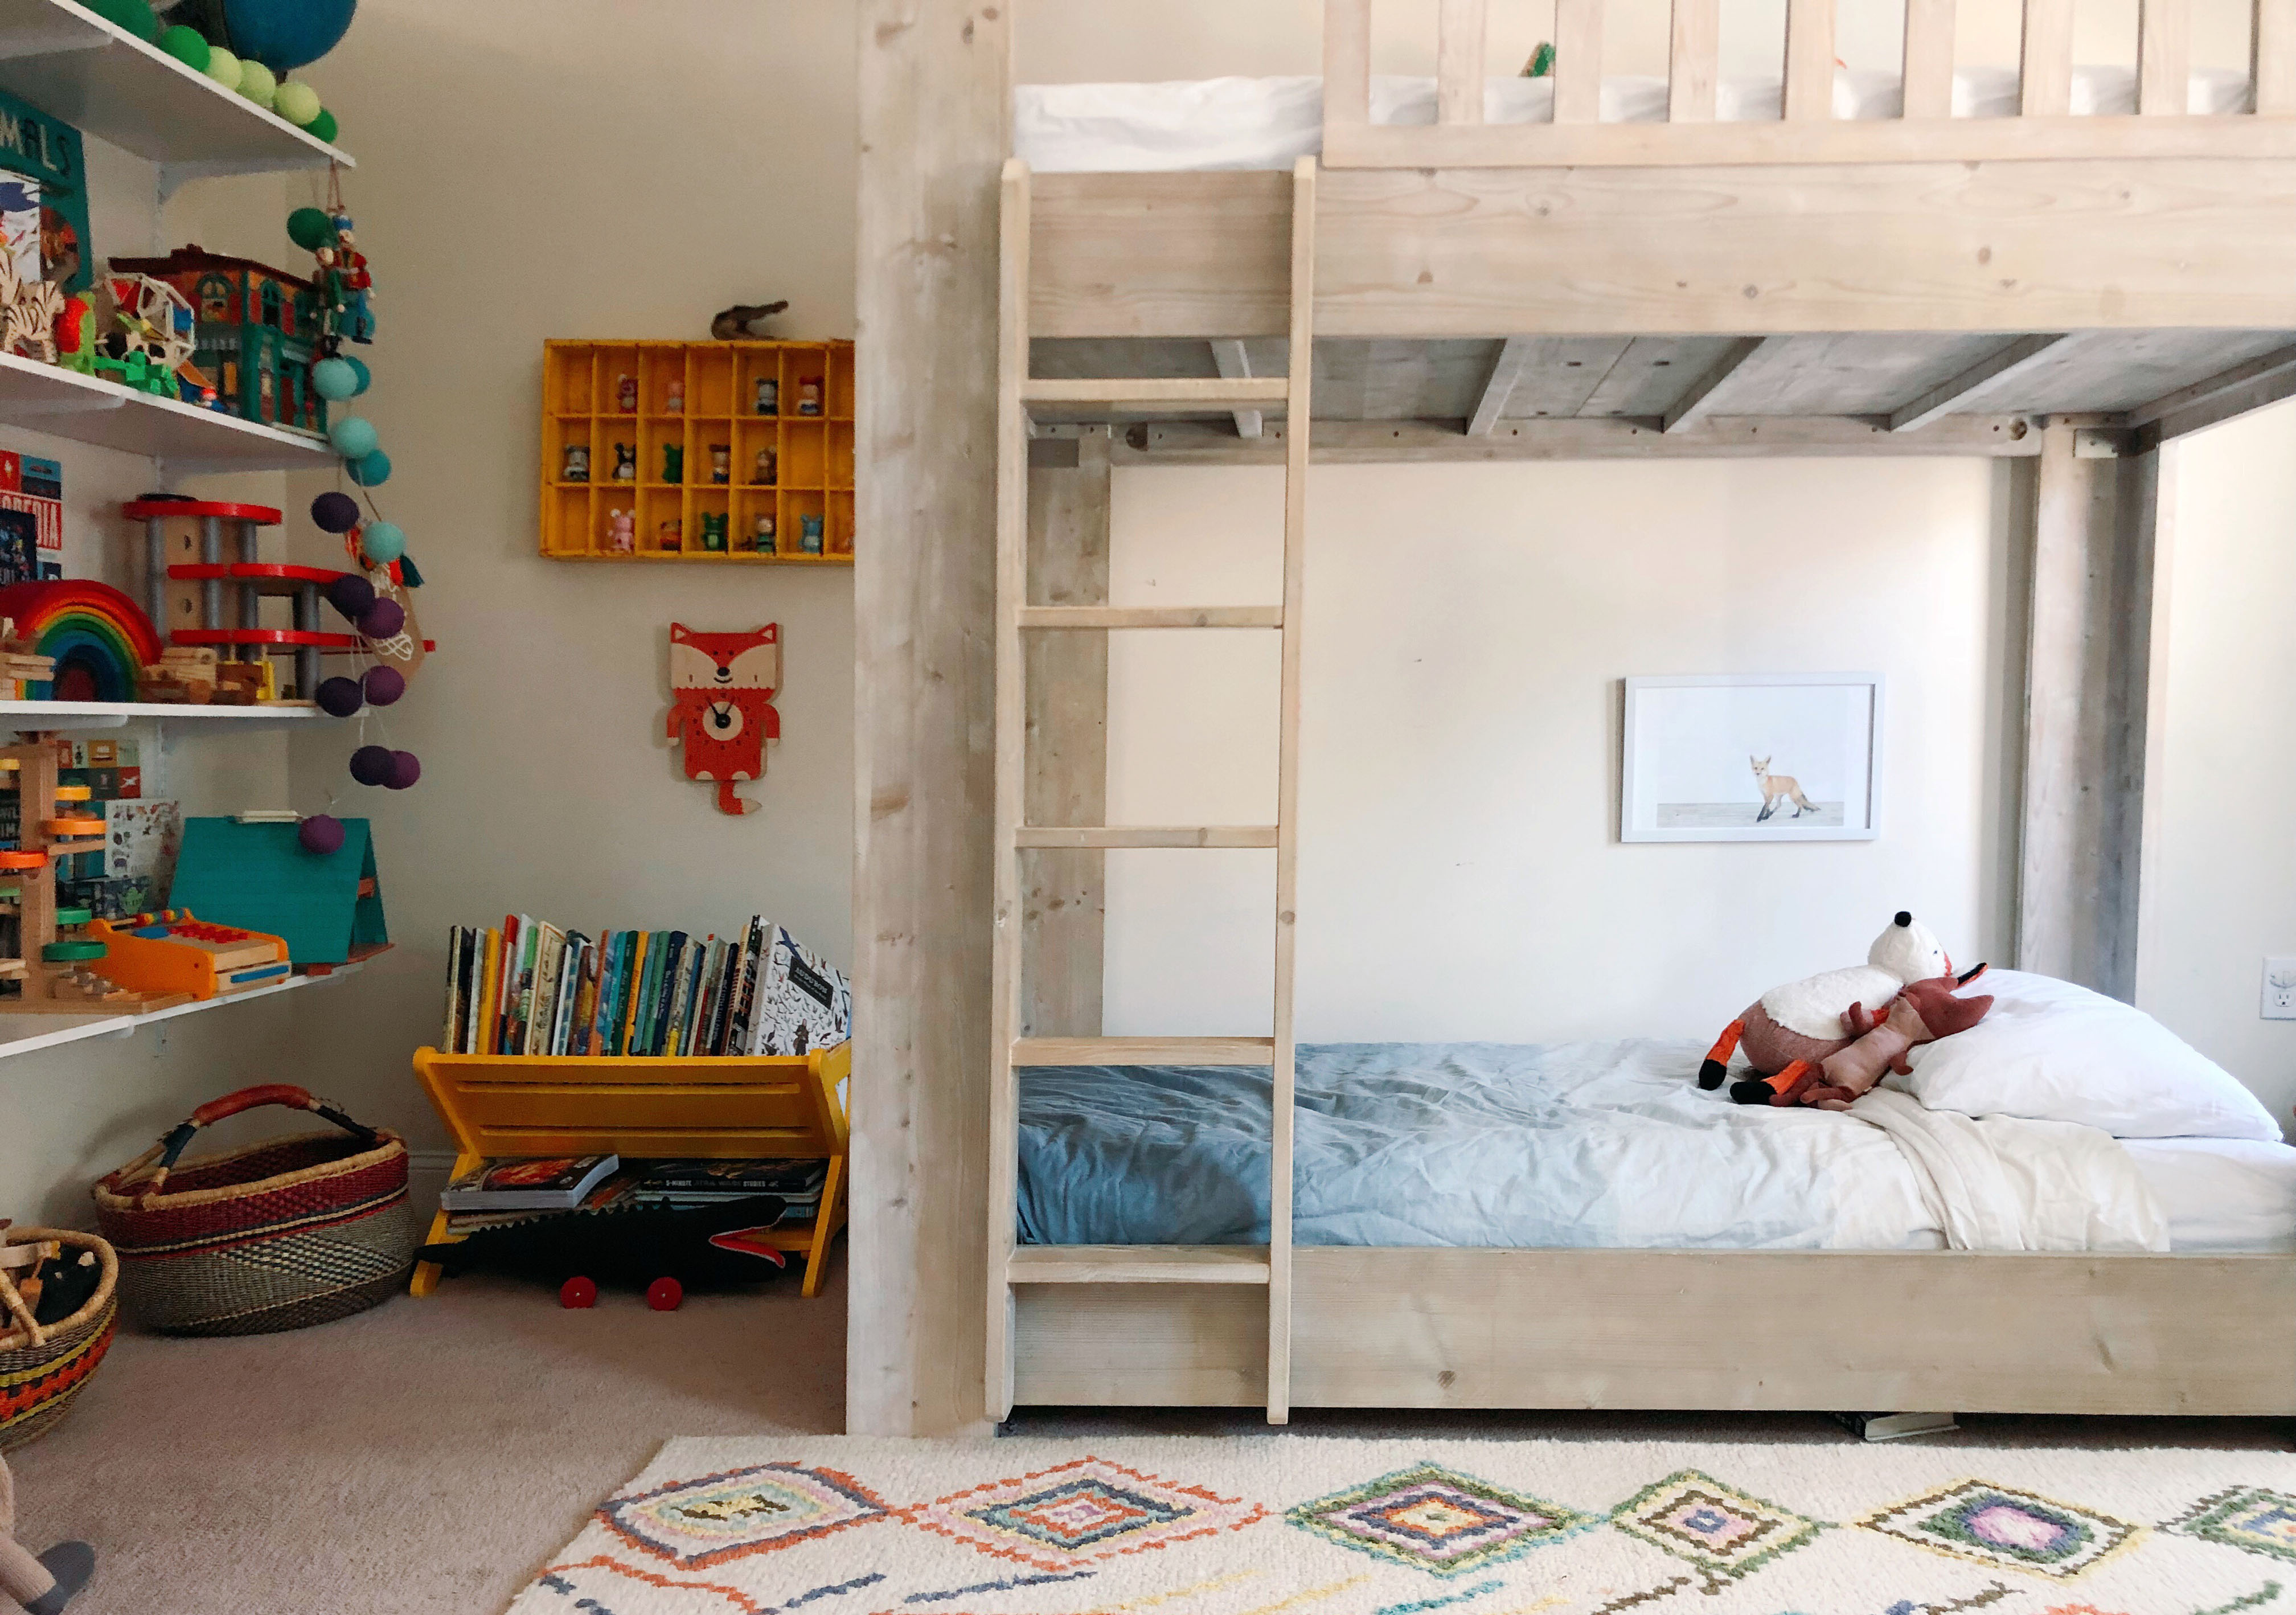 A Family Home Designed for Happy Childhood Memories | Design*Sponge